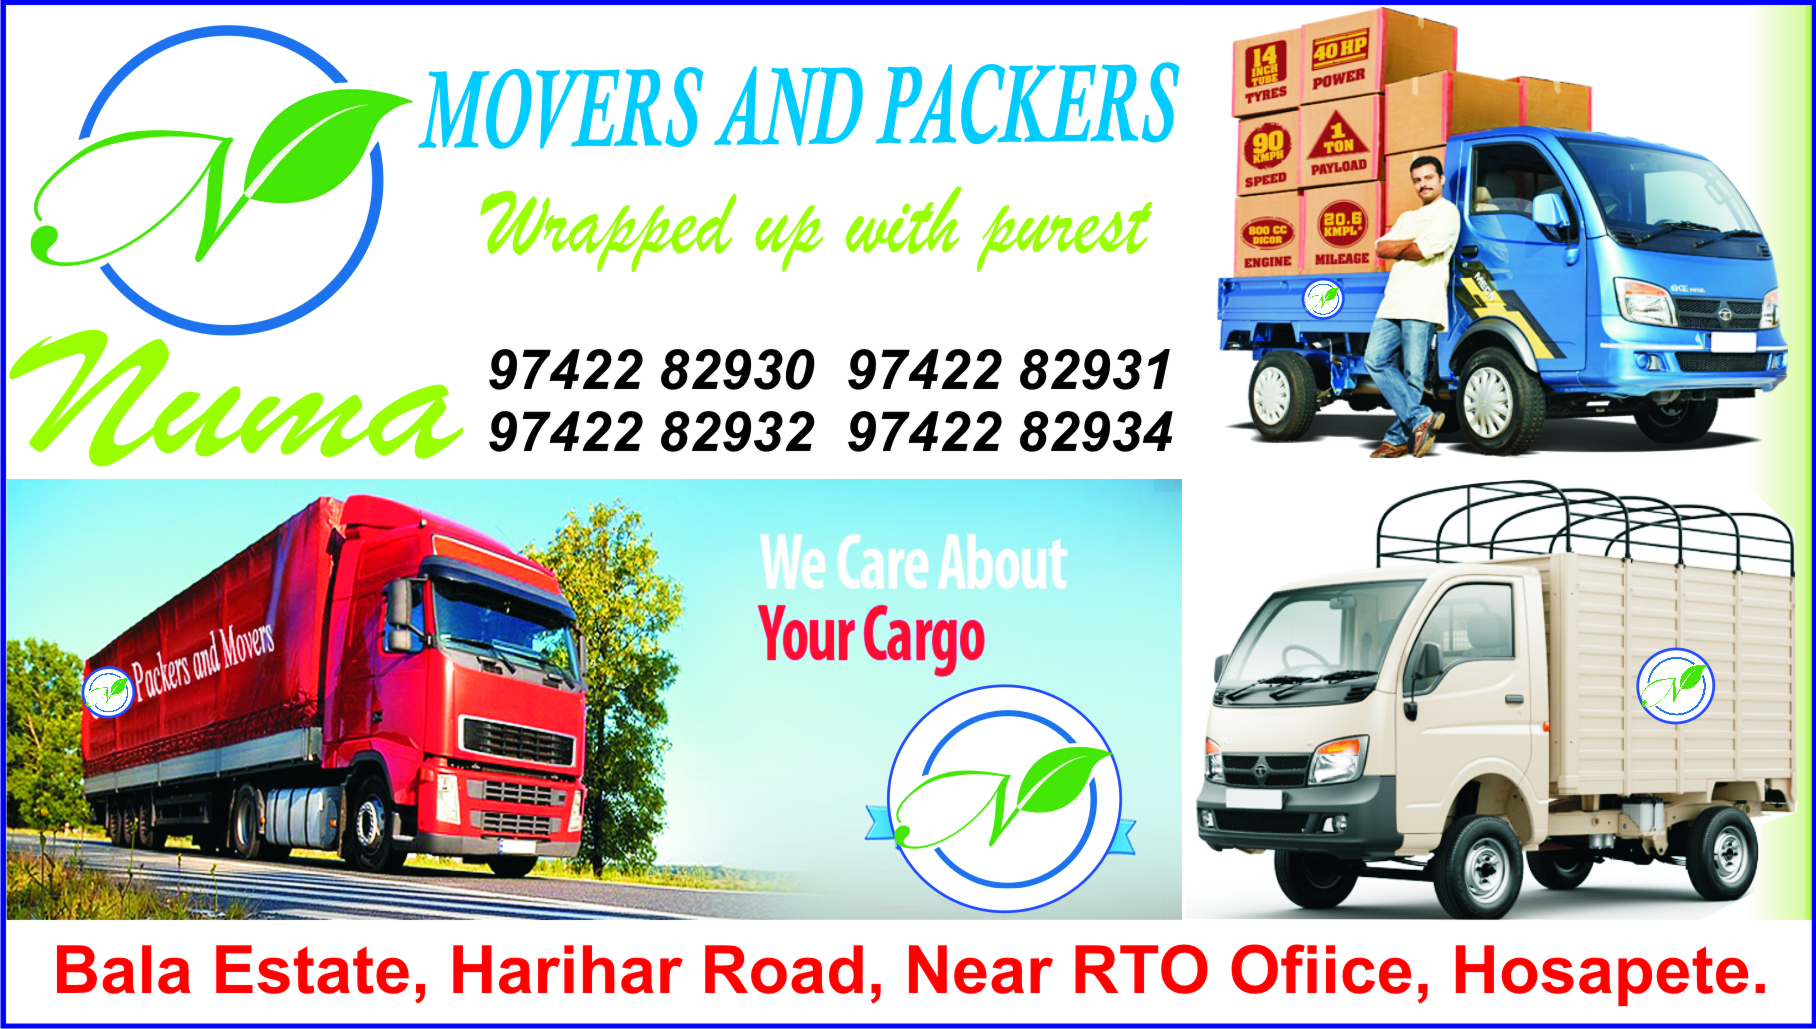 NUMA MOVERS AND PACKERS